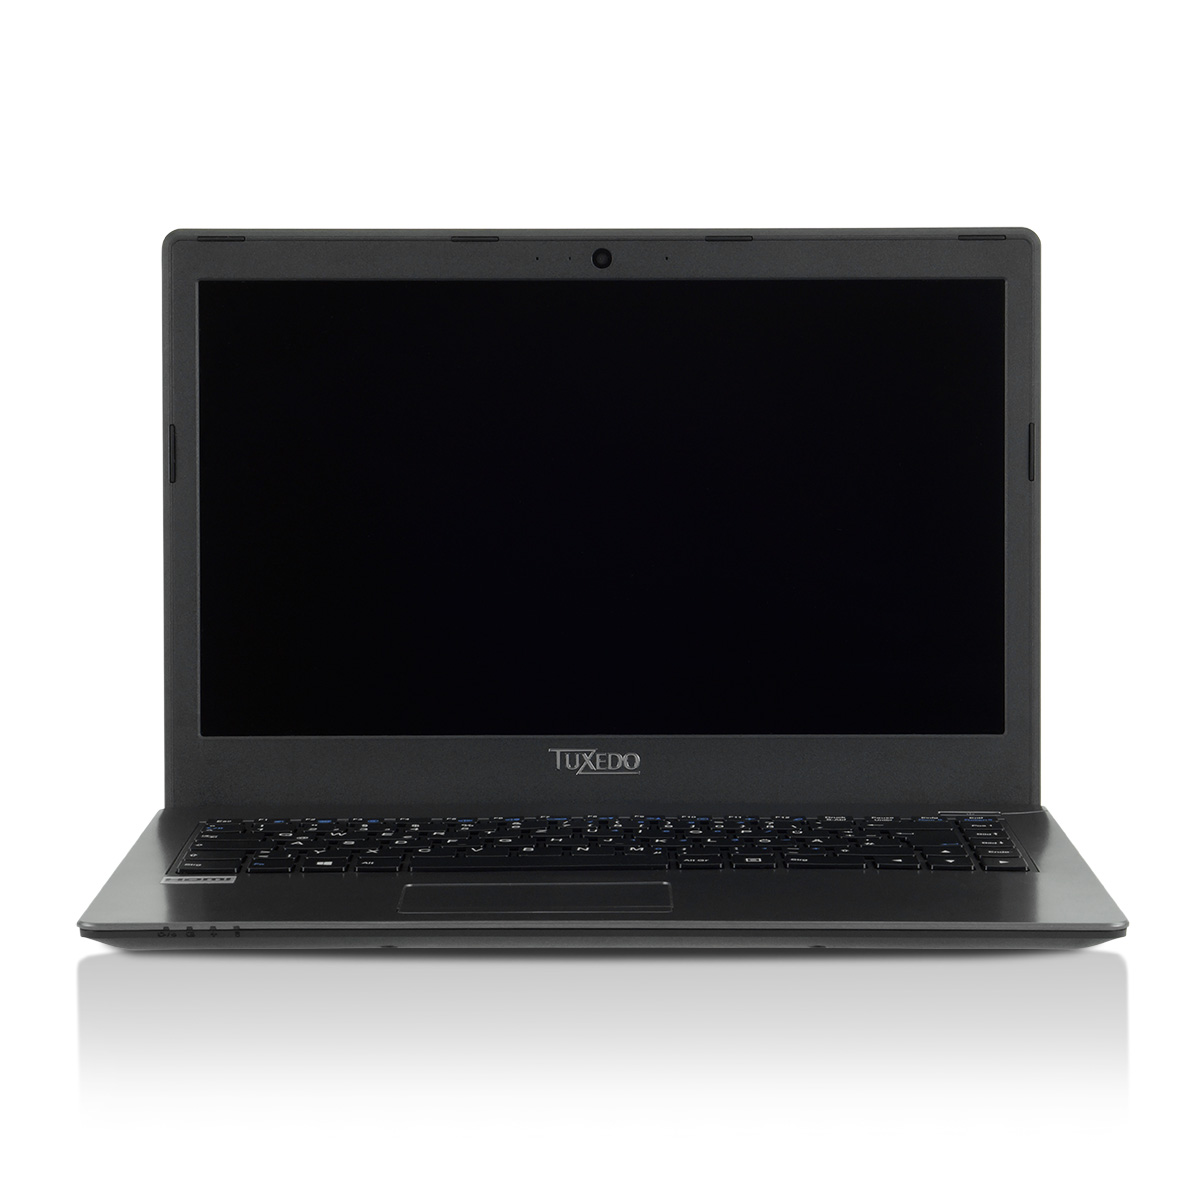 "TUXEDO Book BU1407 - 14"" matt Full-HD IPS + bis Intel Core i7 Energiespar-CPU + zwei HDD/SSD + bis 32GB RAM + bis 10h Akku + Slim-Book + LTE opt."